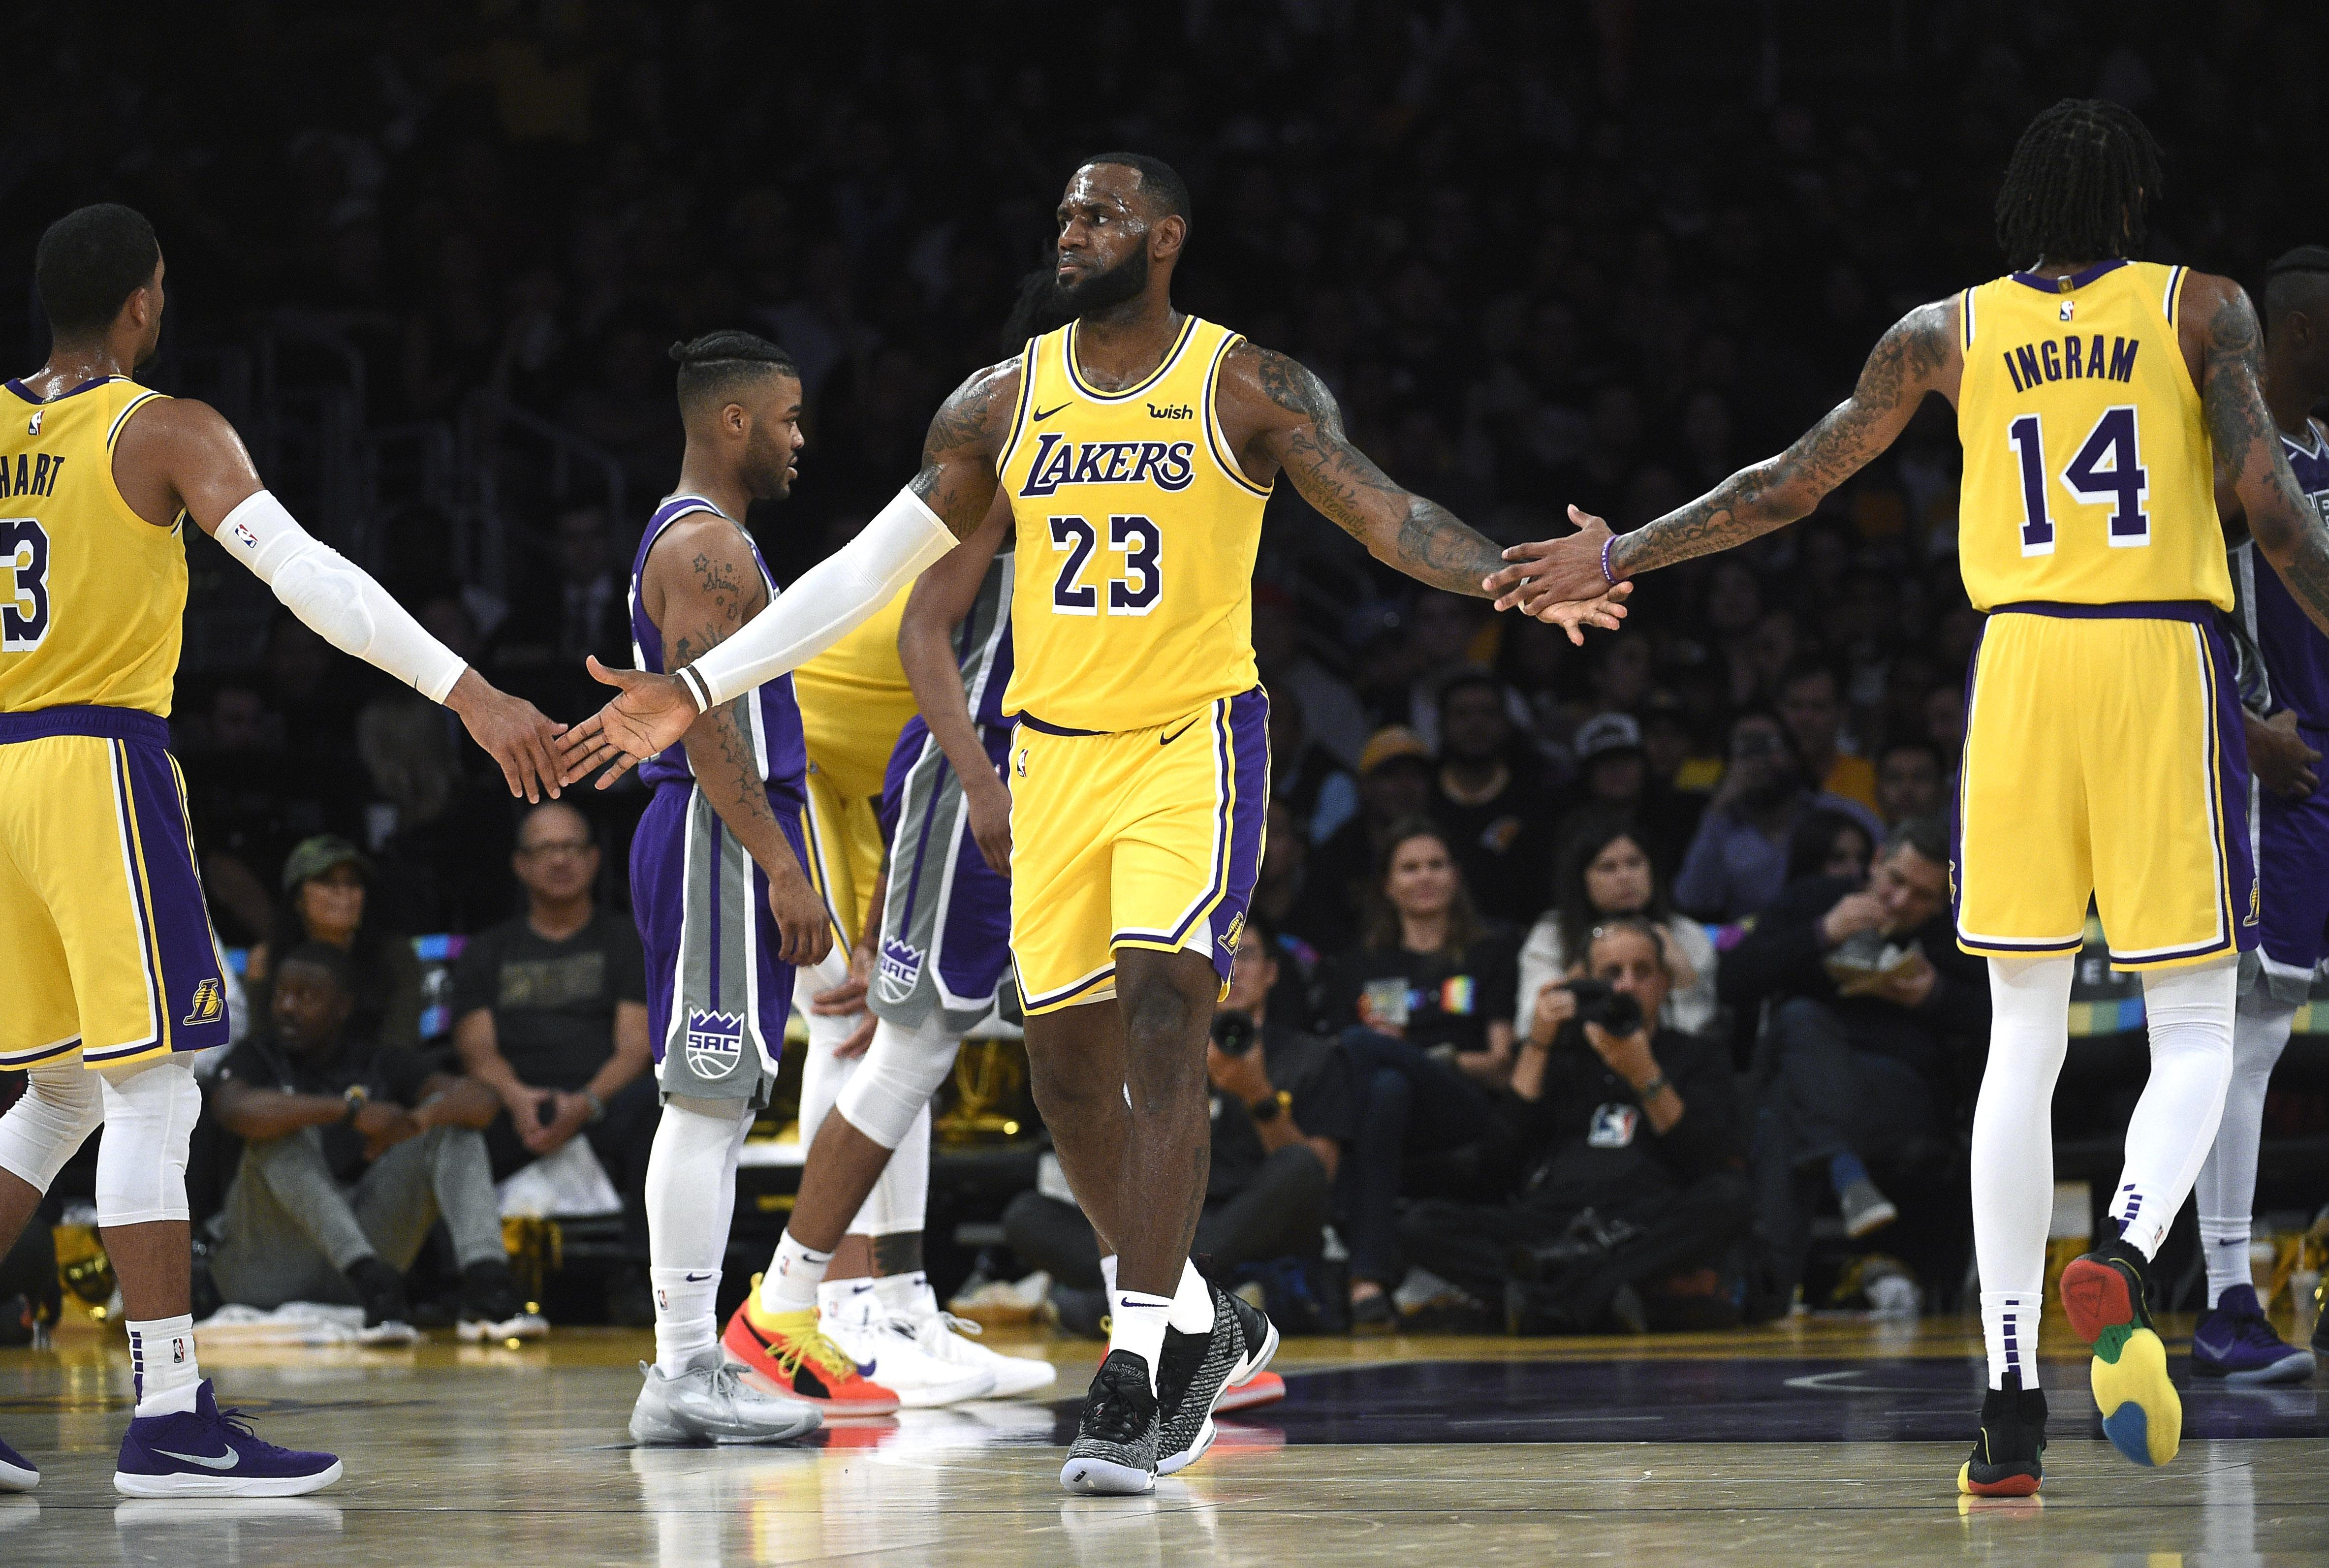 Lakers vs. Warriors 2018: Start Time, TV Channel For ...